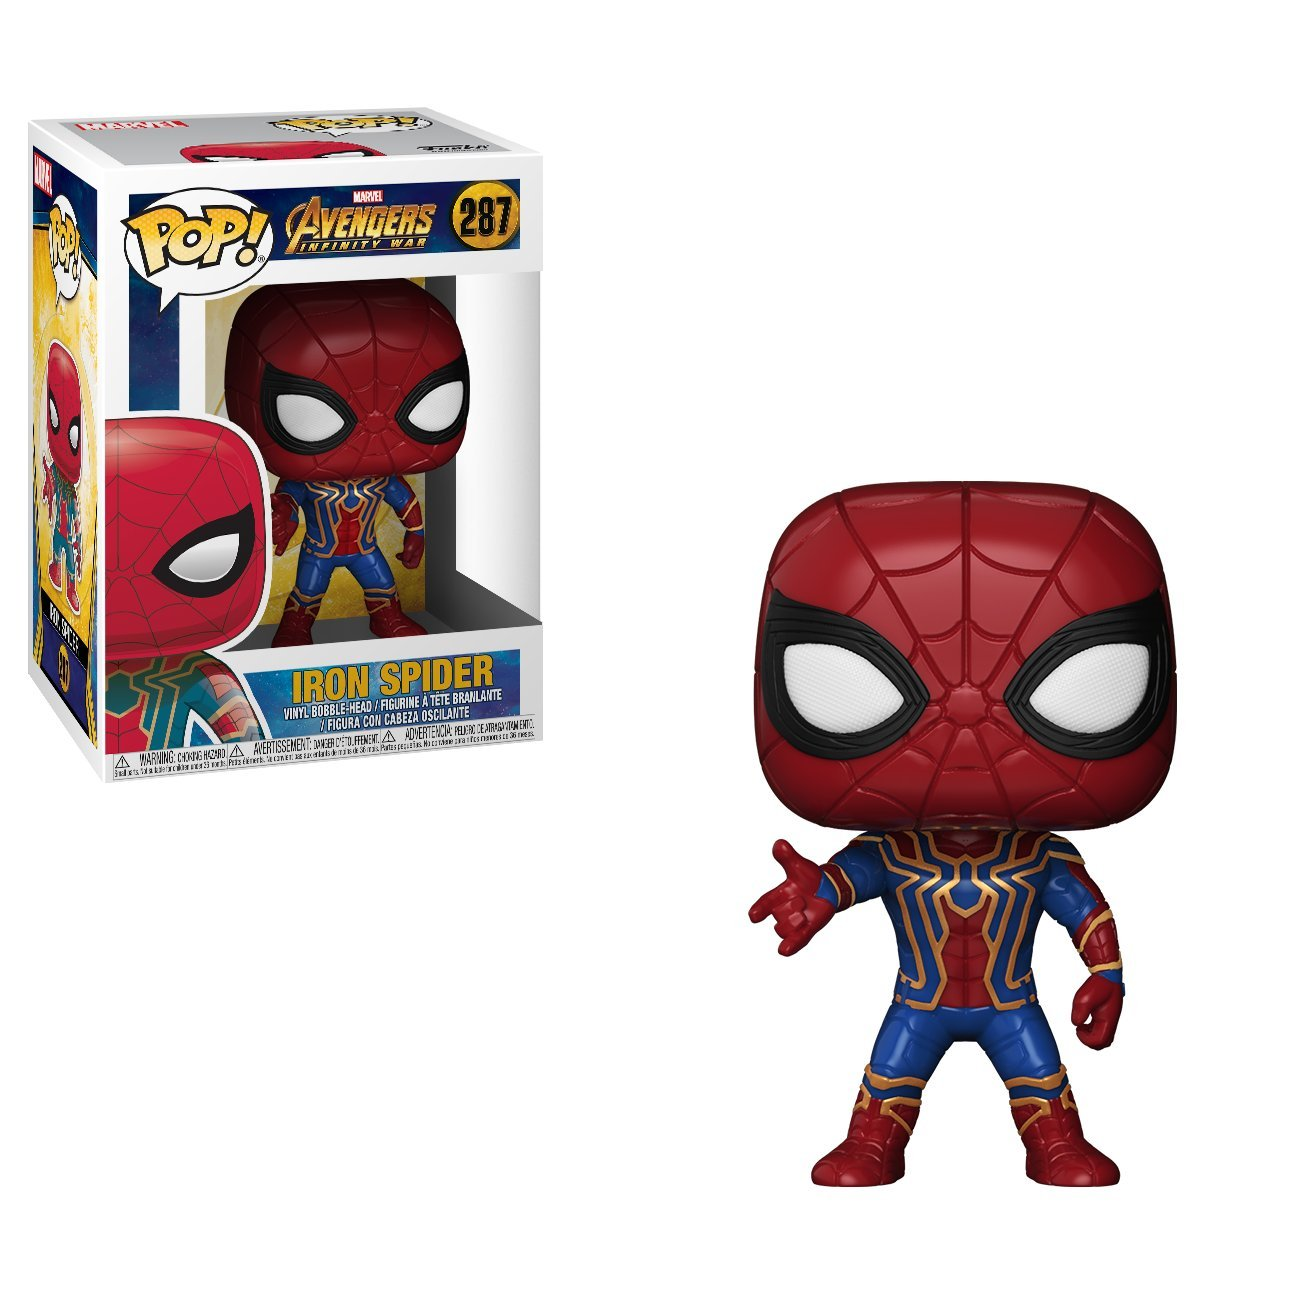 FUNKO POP! Marvel: Avengers Infinity War - Iron Spider 26465 Accessory Consumer Accessories